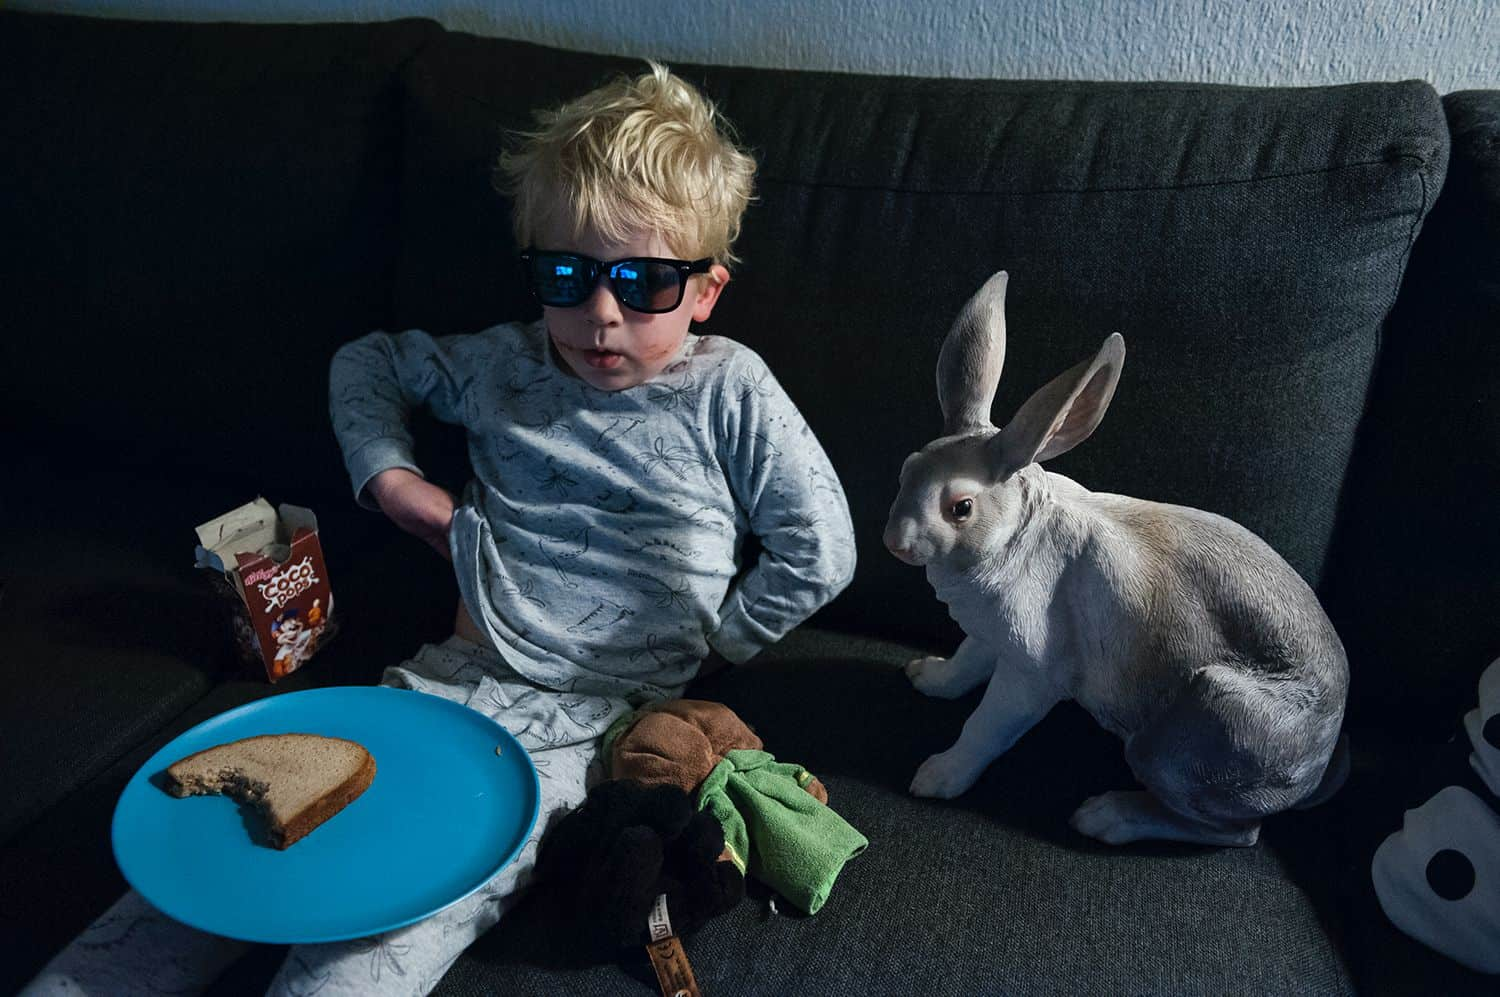 A little boy in sunglasses sits on a sofa eating a piece of bread with a rabbit statue sitting beside him